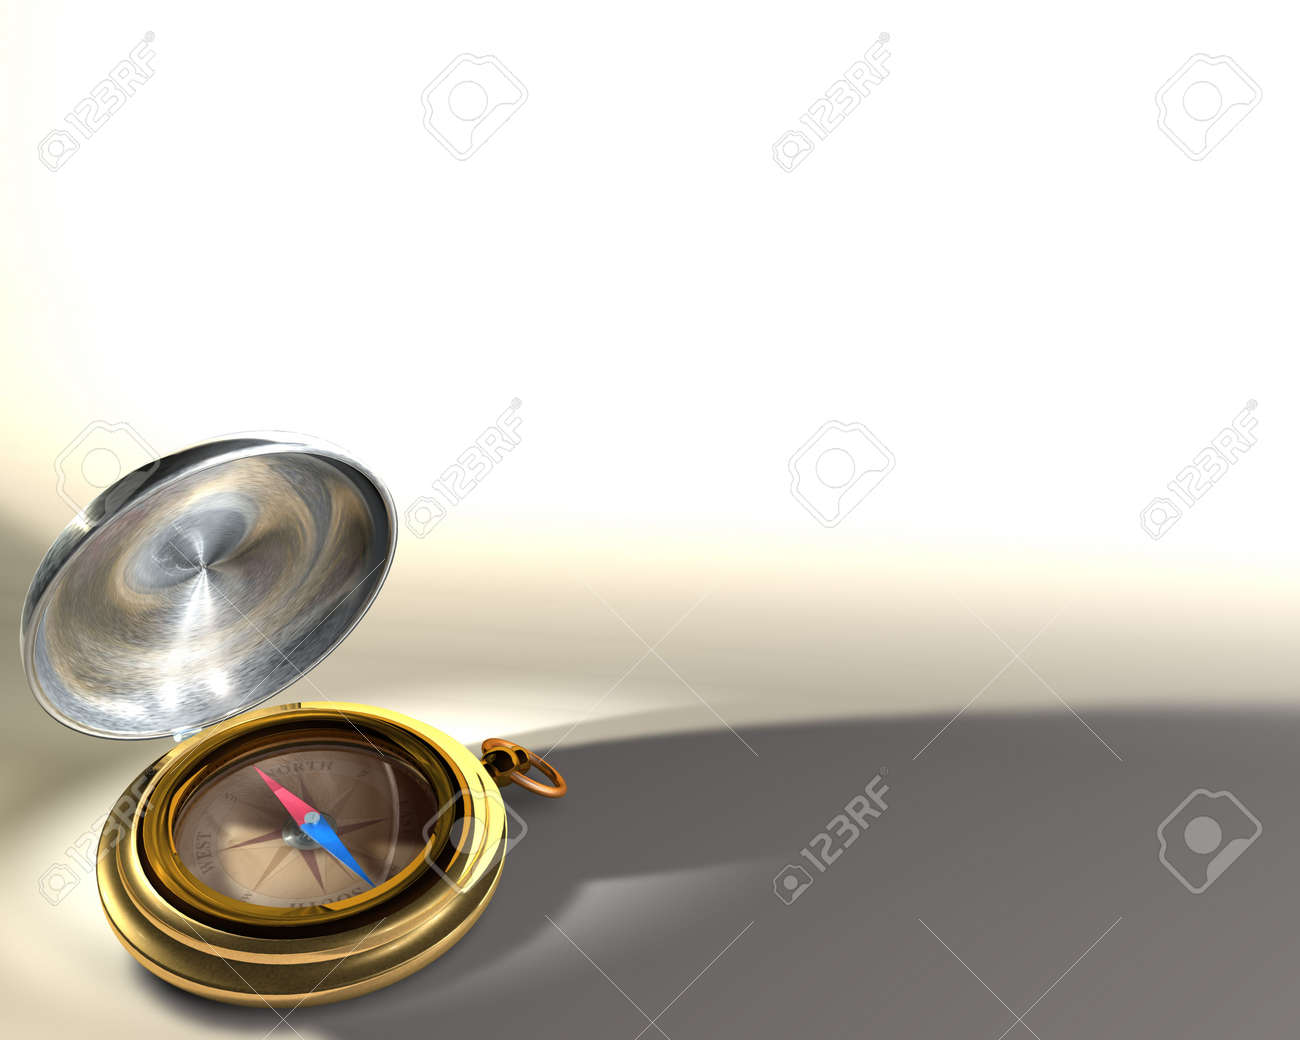 Opened compass on white background Stock Photo - 7059279